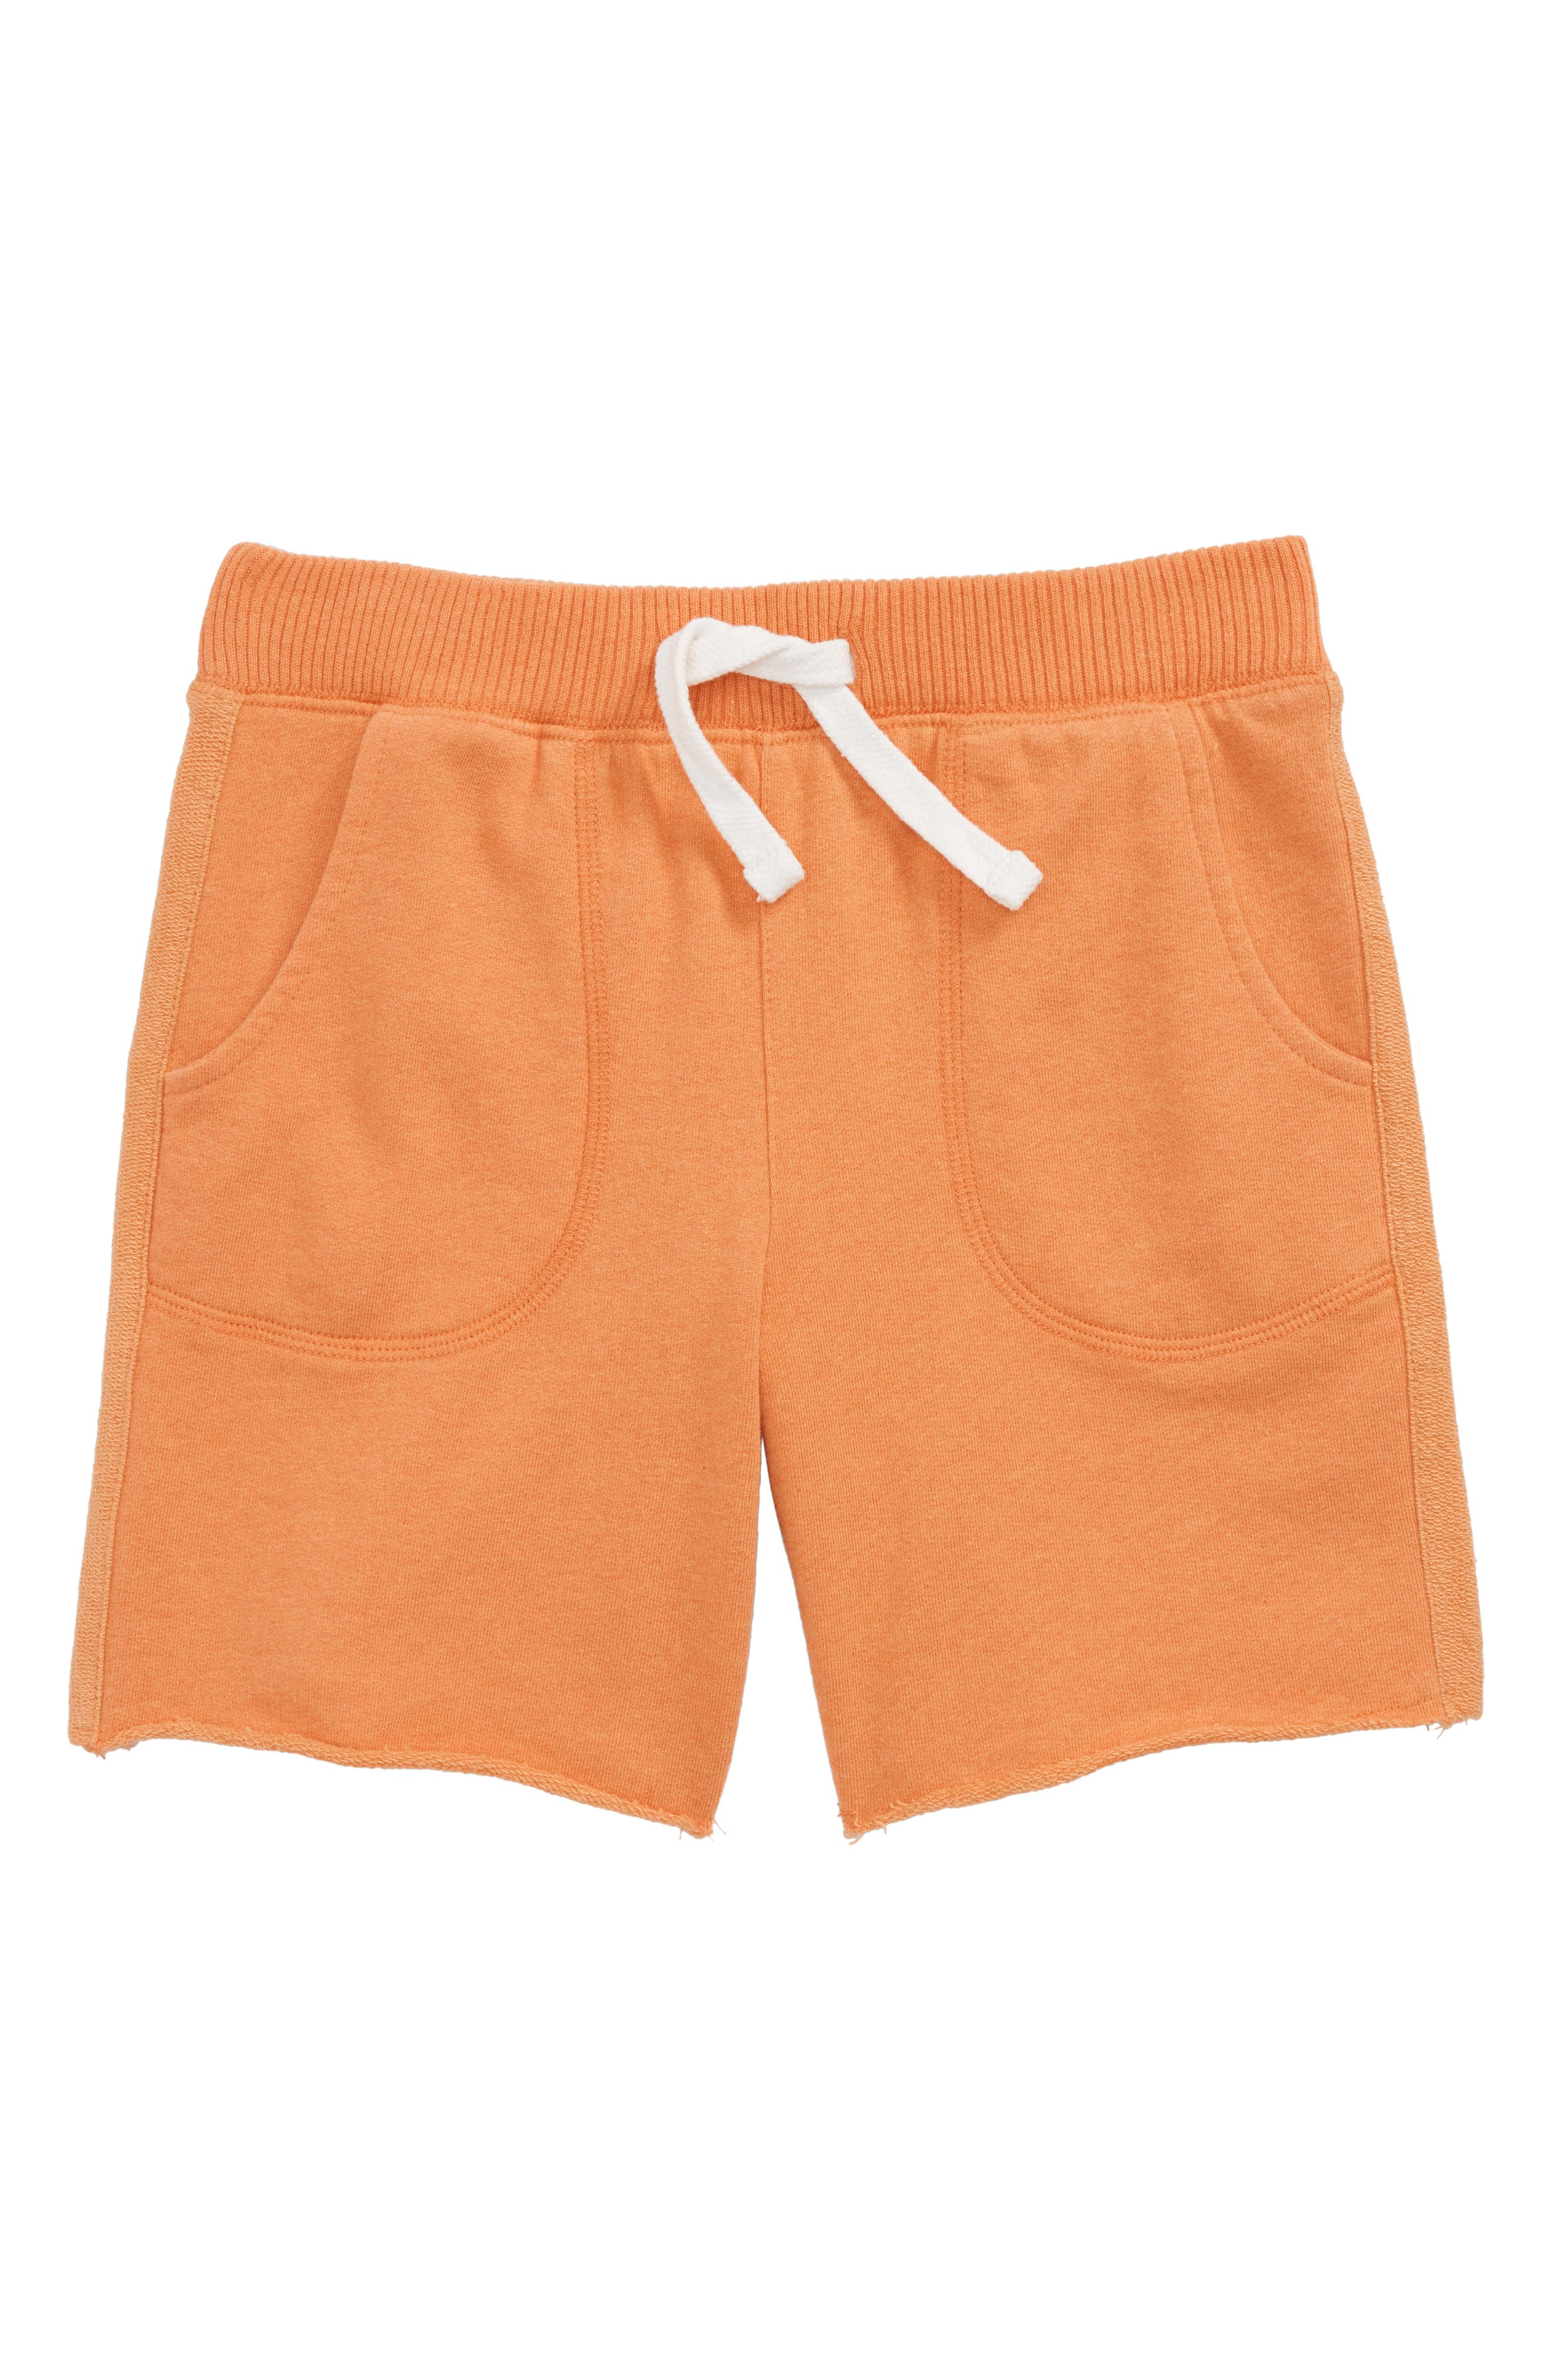 Fleece Shorts,                         Main,                         color, Orange Glaze